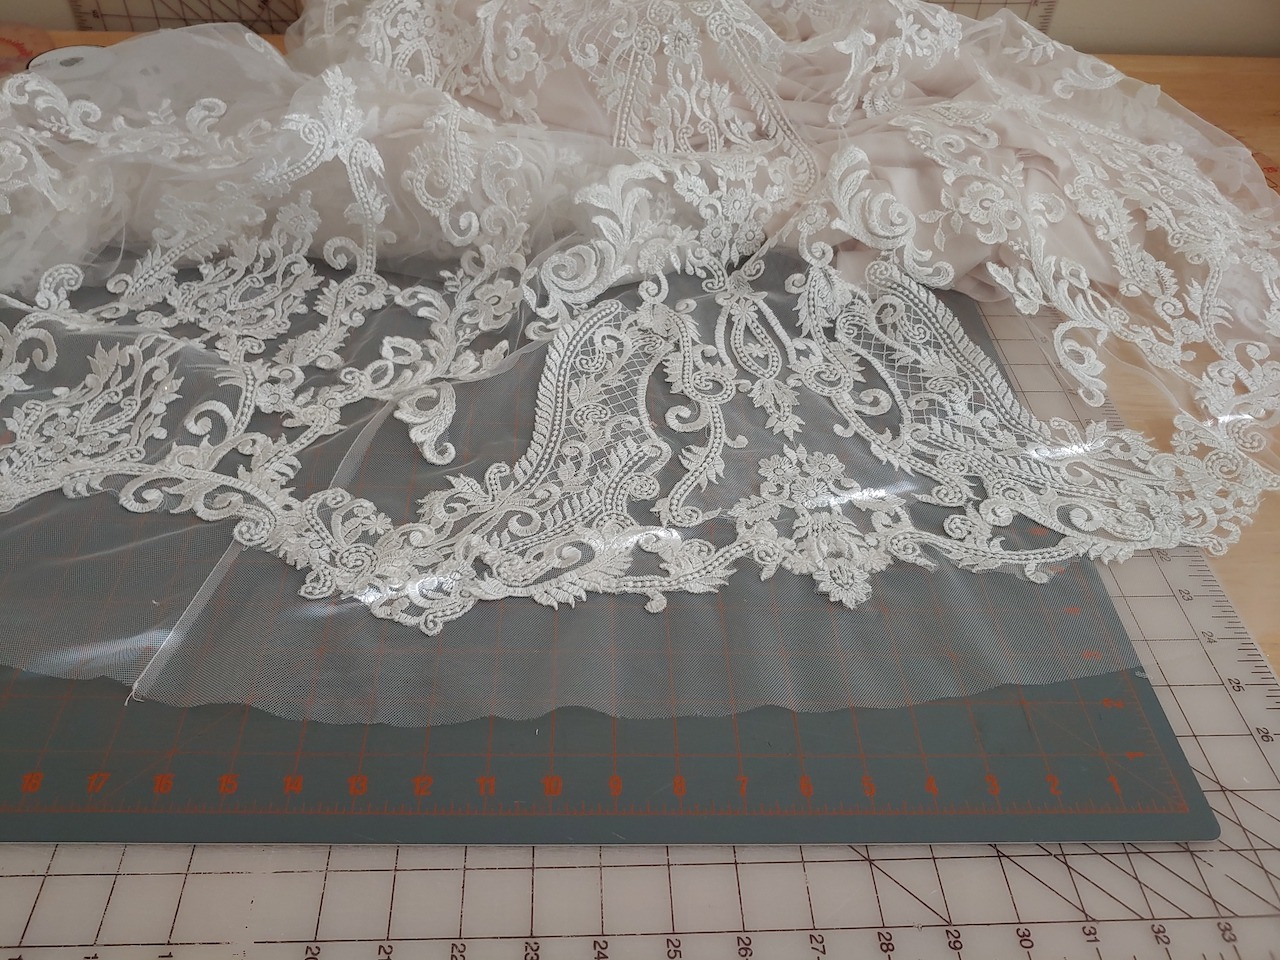 The hem of a wedding dress after alterations are completed